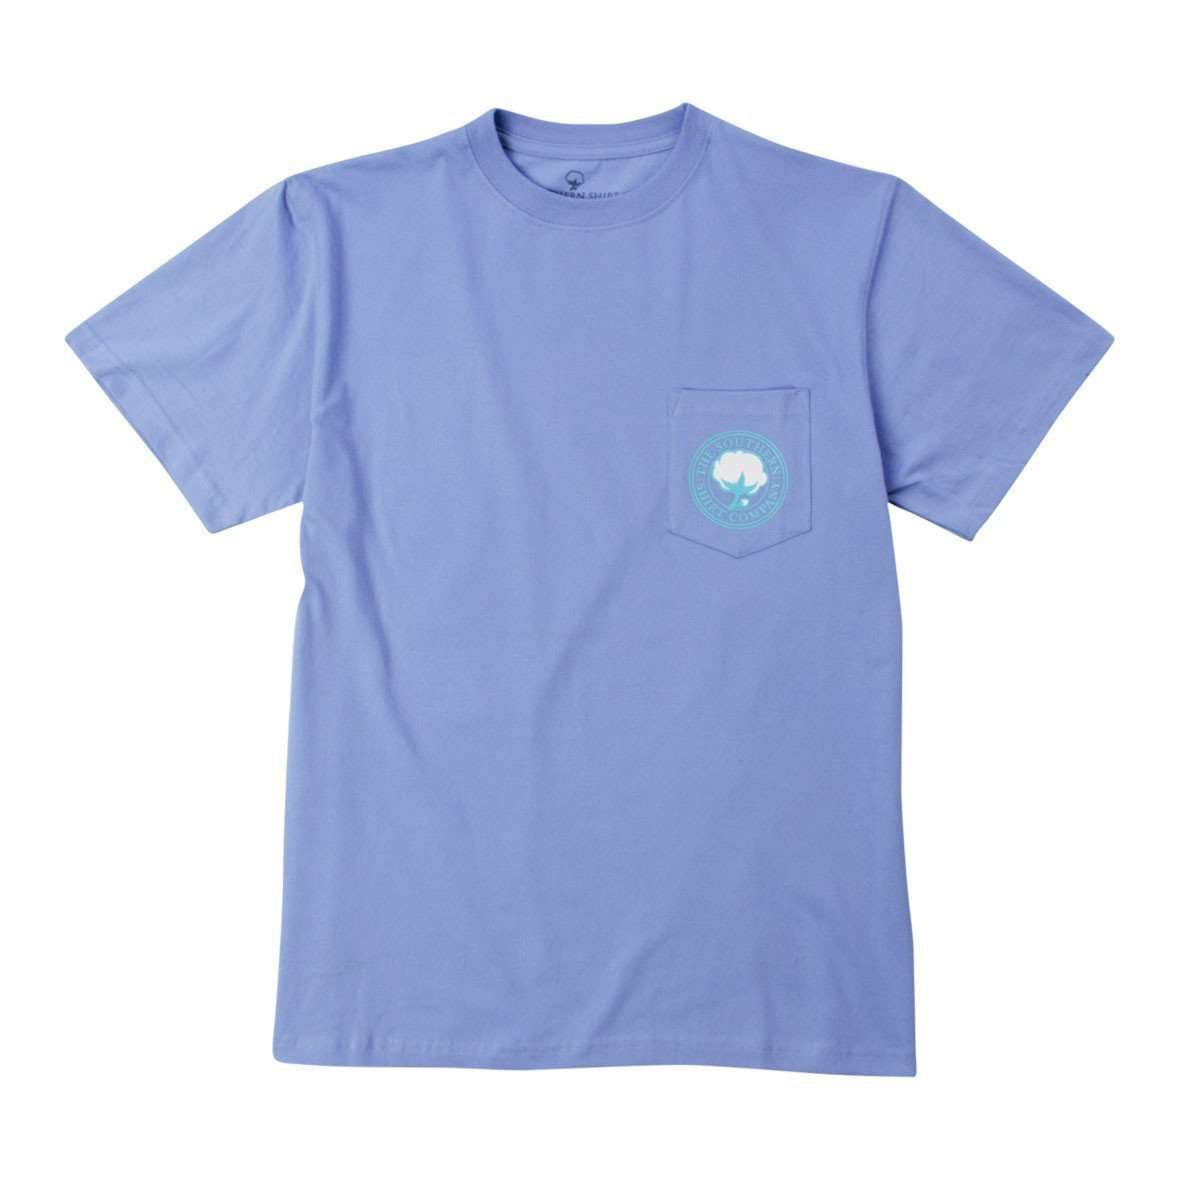 Tee Shirts - Signature Logo Tee In Cornflower Blue By The Southern Shirt Co.